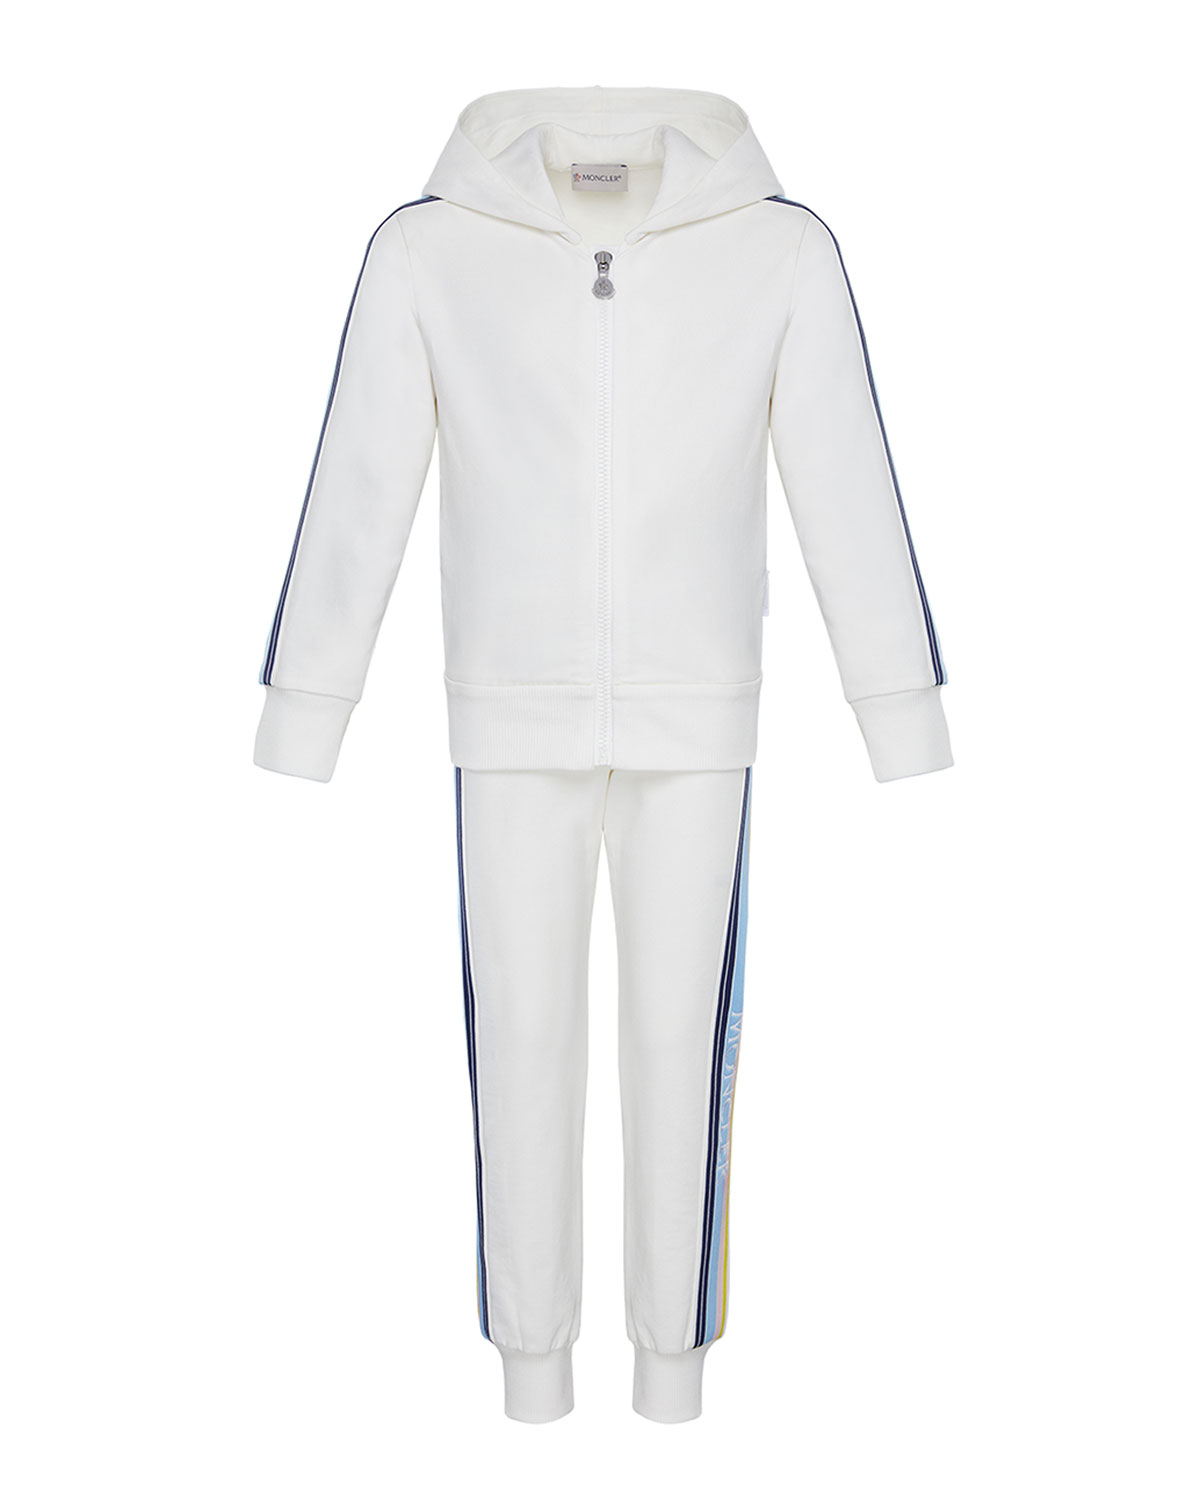 Moncler Kids' Girl's Logo Tape Hooded Zip-front Track Jacket W/ Matching Joggers In White